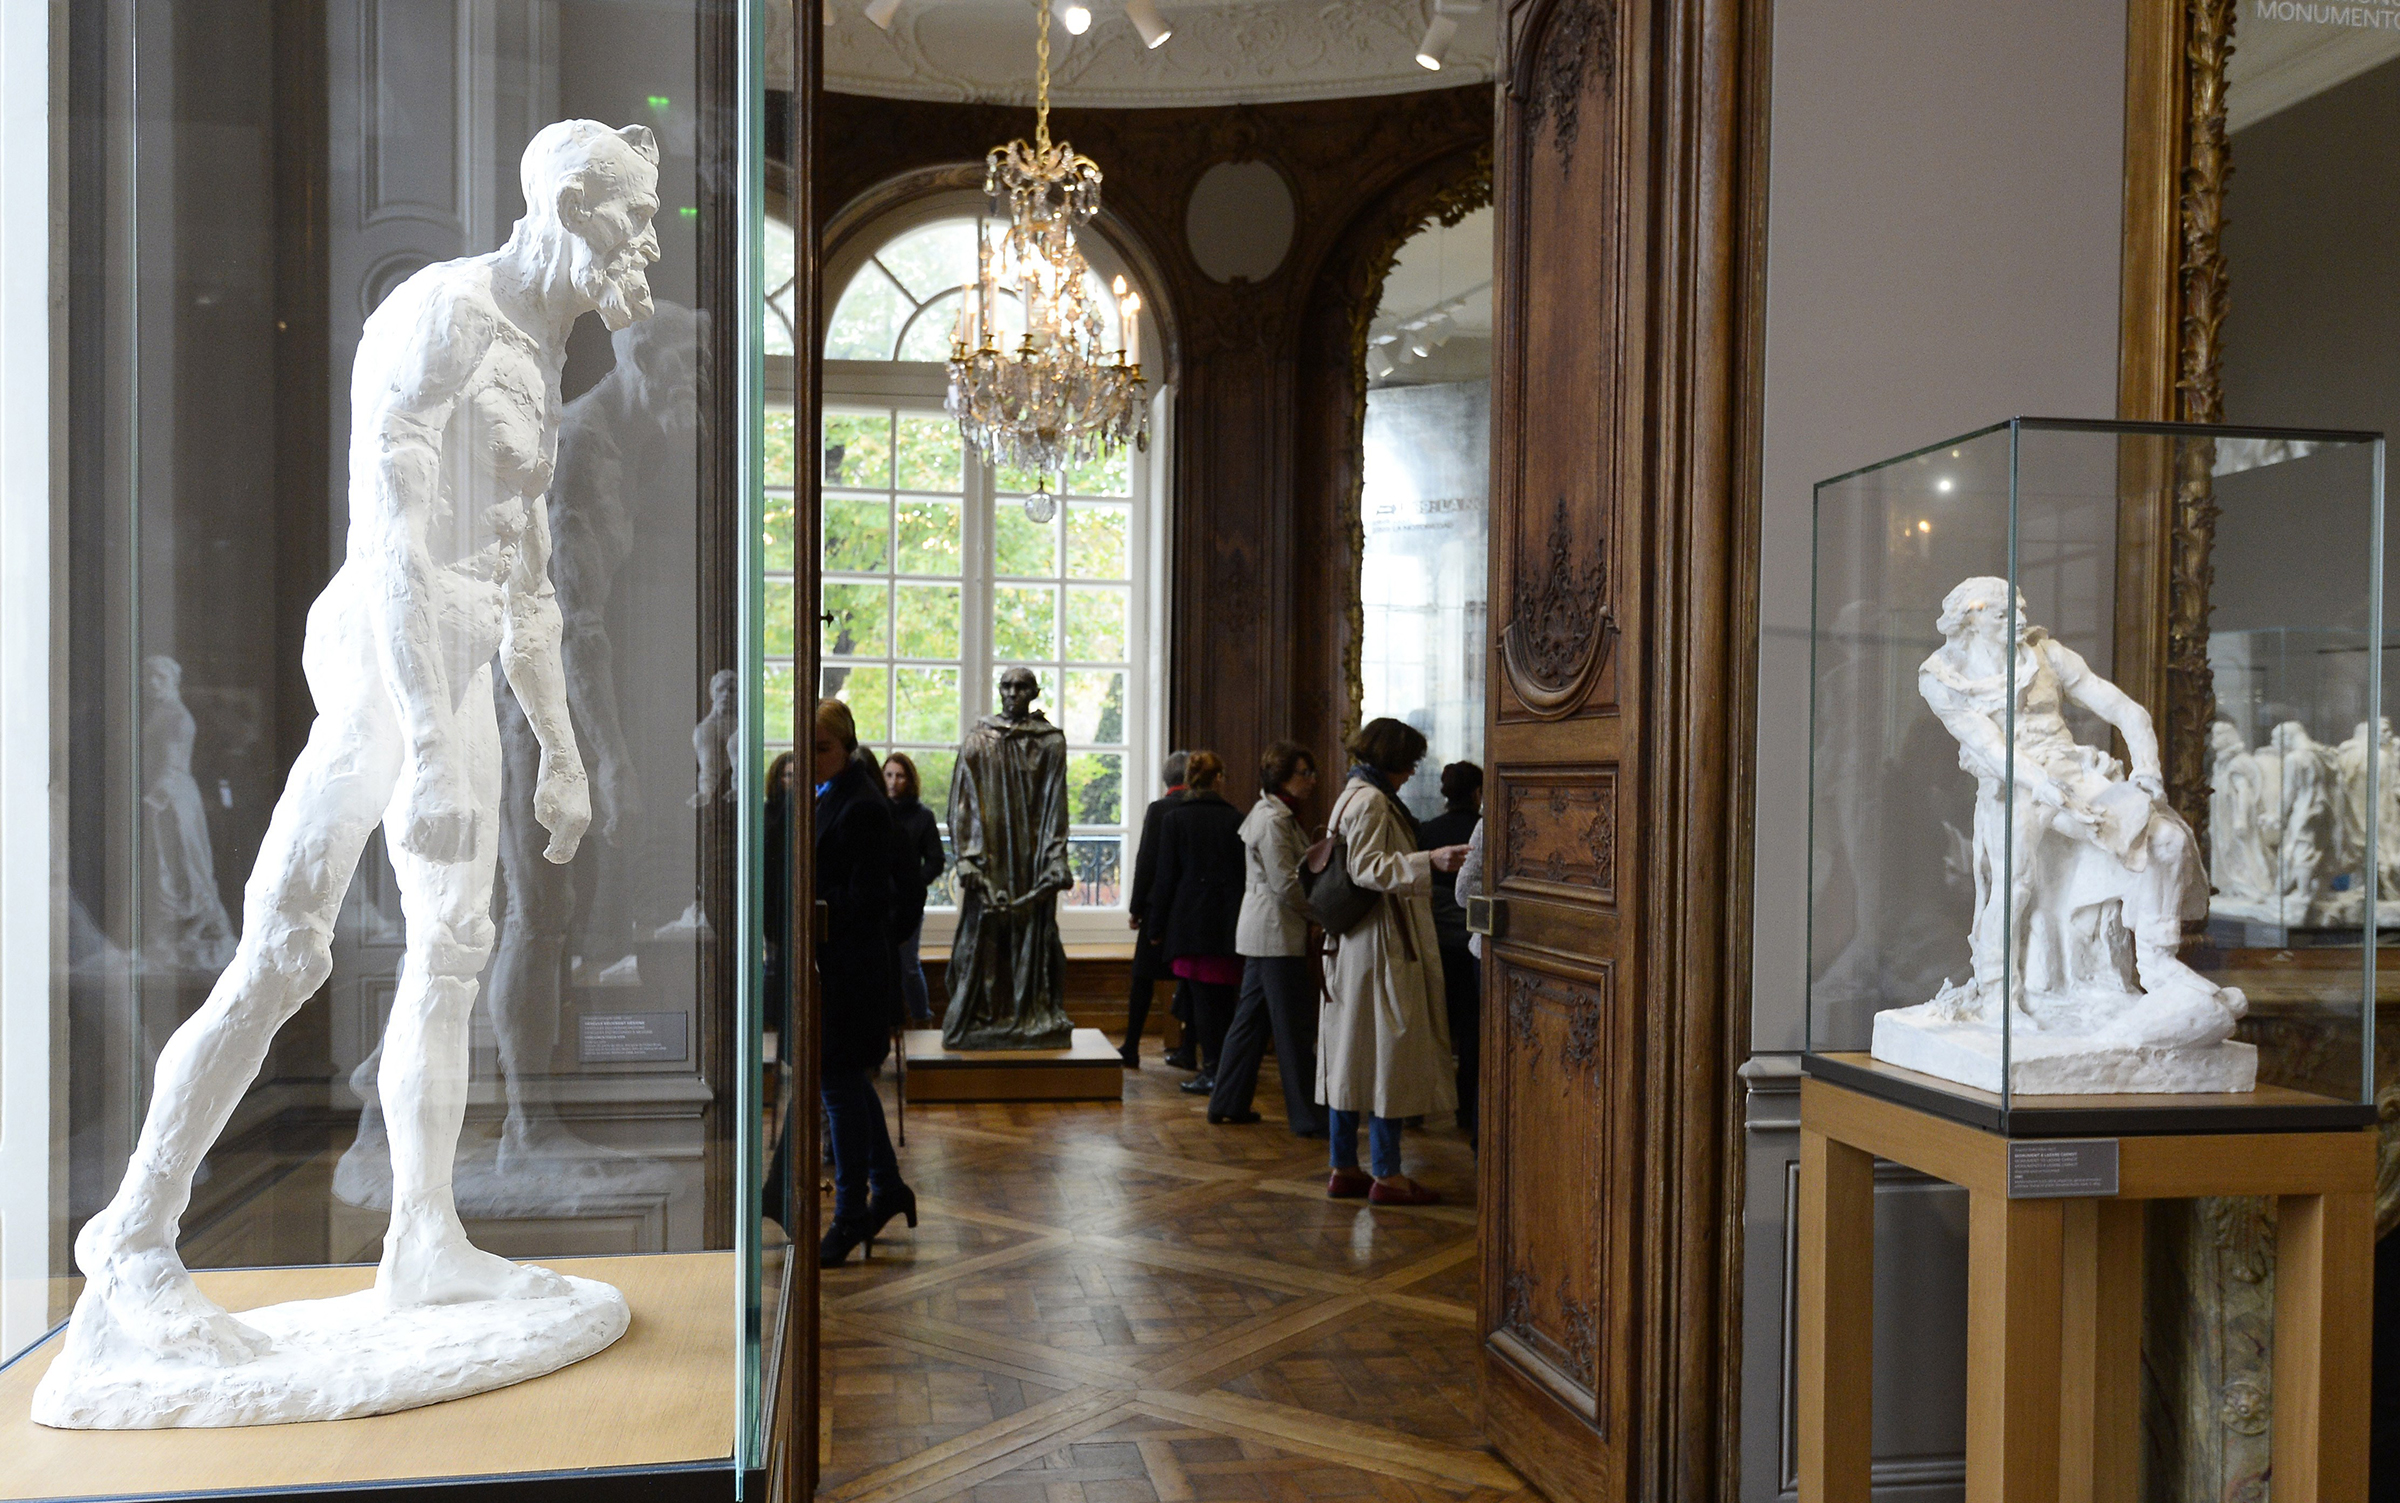 Hotel Biron Musee Rodin Paris France 48 hours in Paris